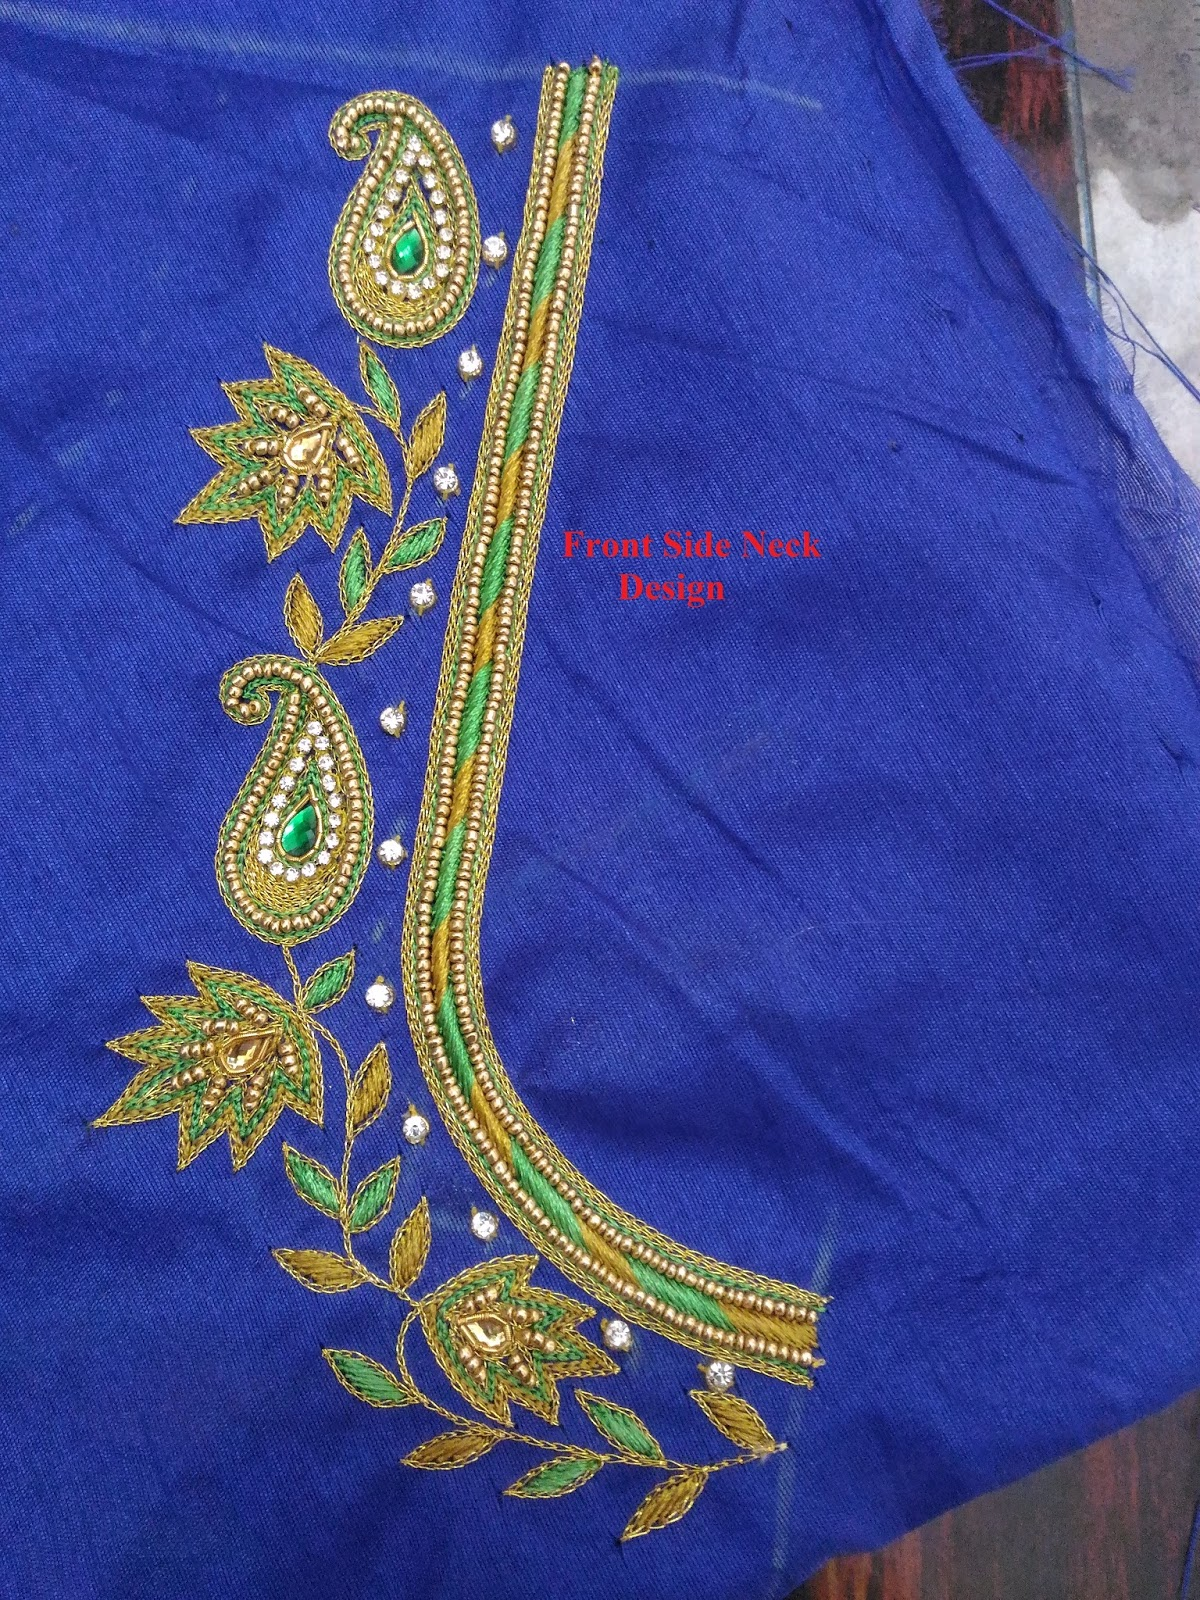 Indian traditional handloom sarees maggam work blouse